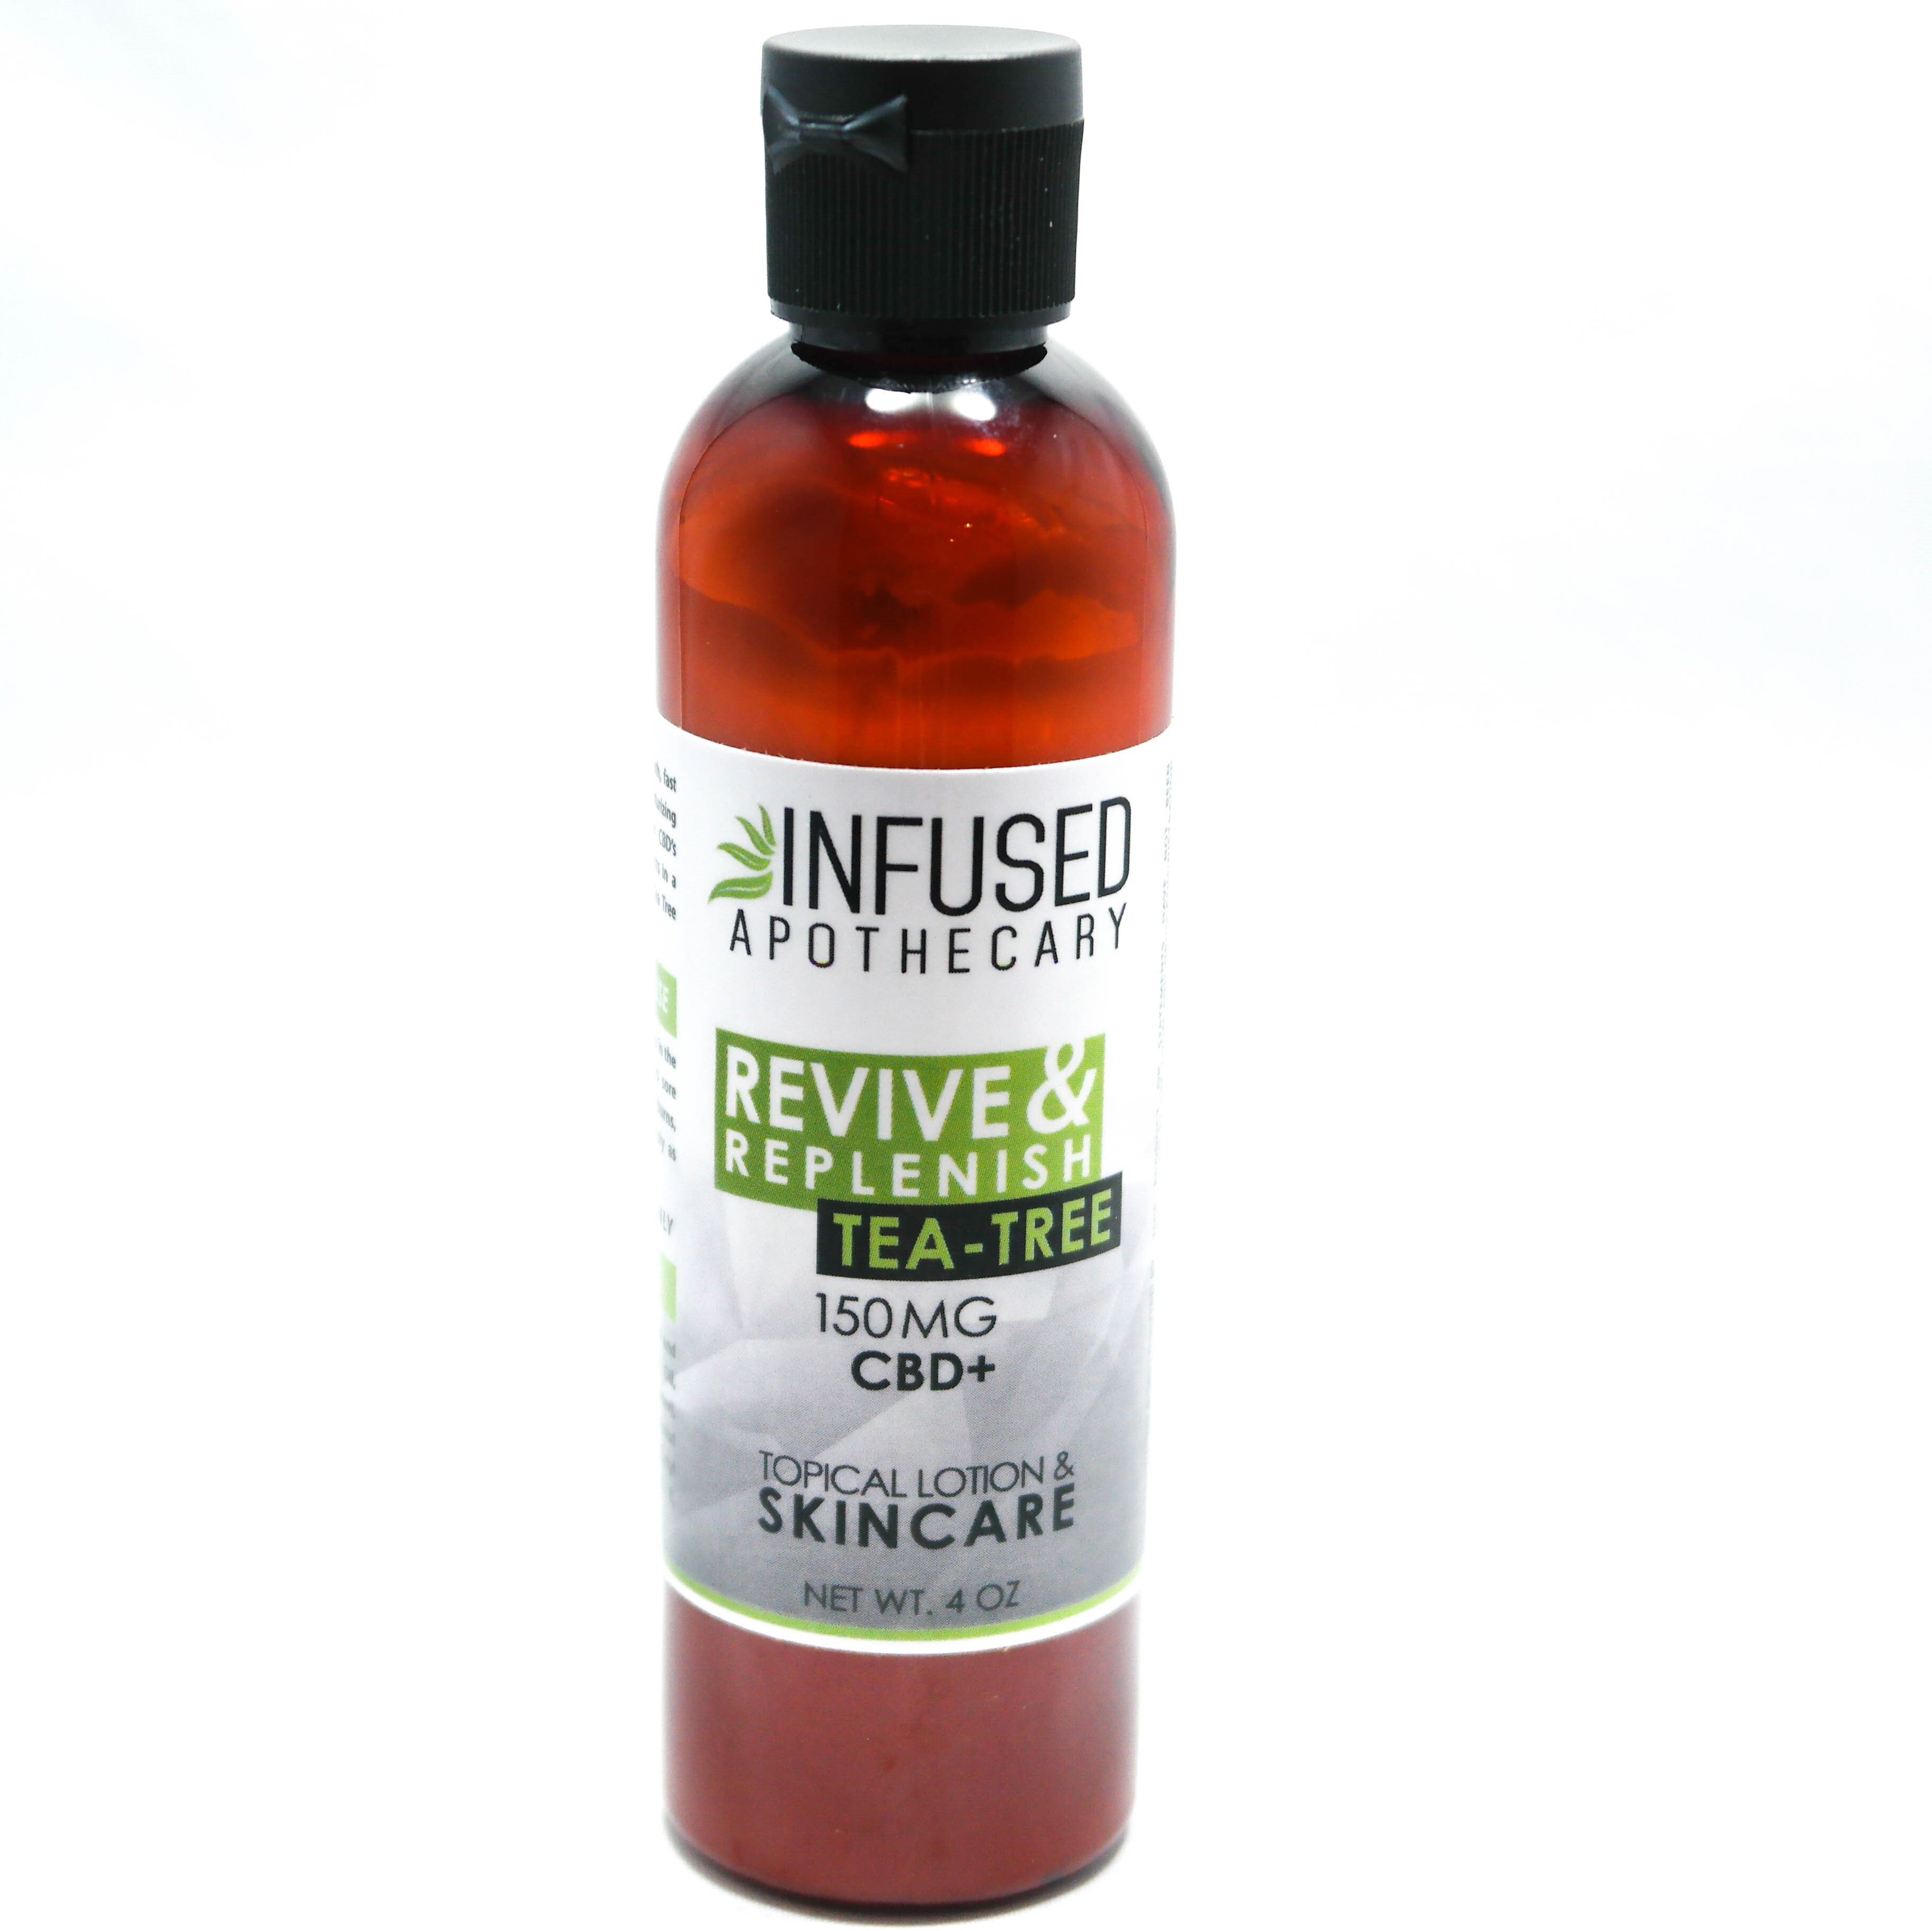 Infused Apothecary CBD Lotion